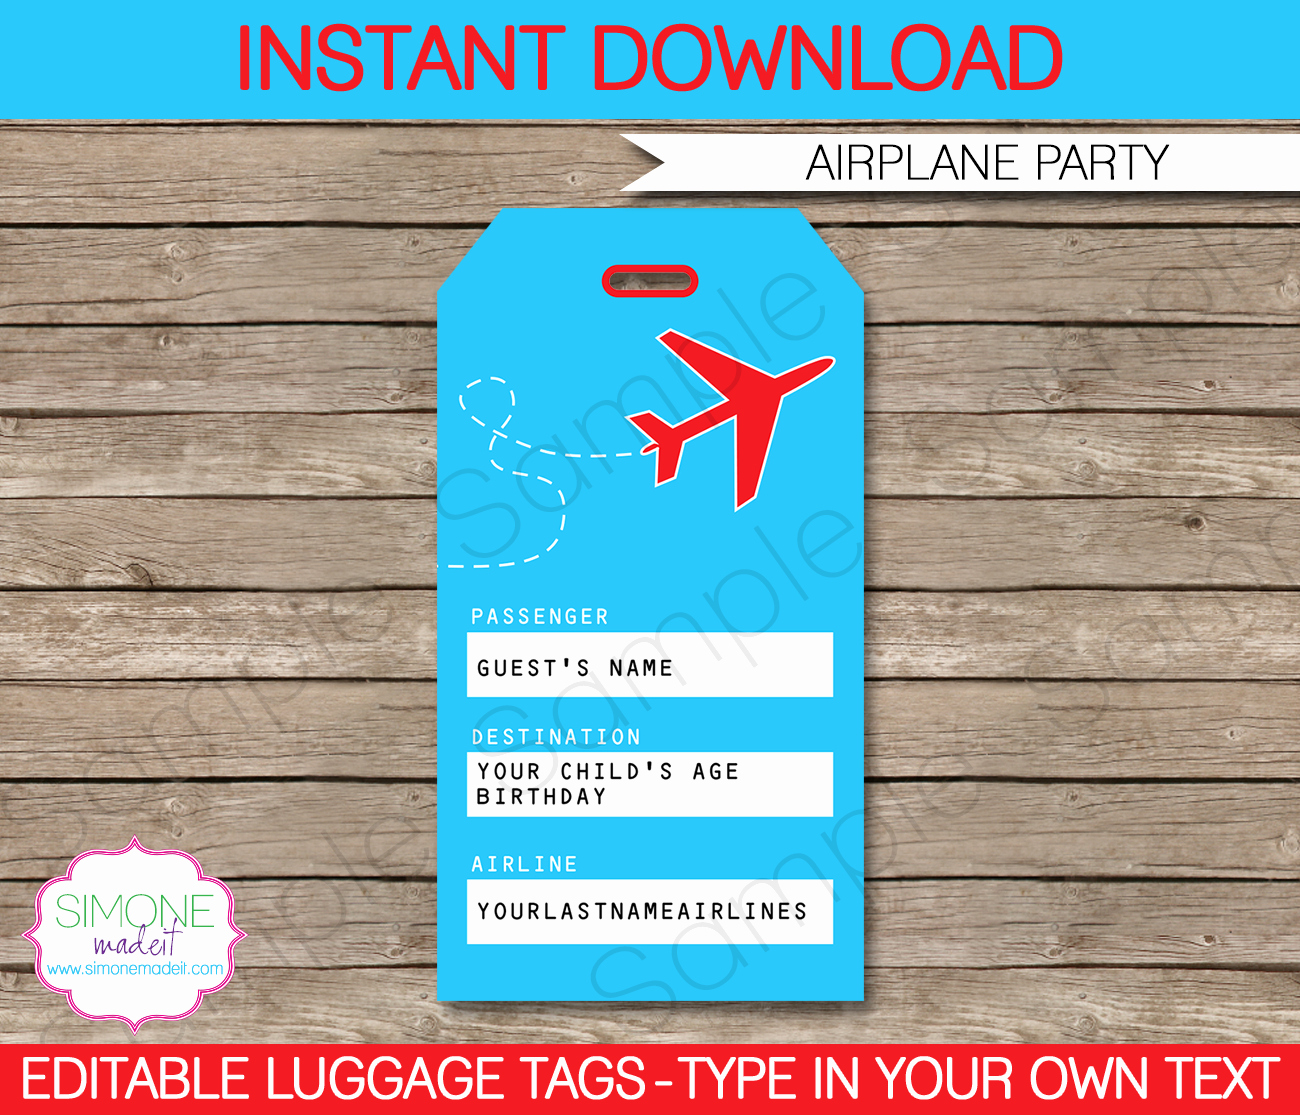 Printable Luggage Tags Template Lovely Airplane Party Printables Invitations & Decorations